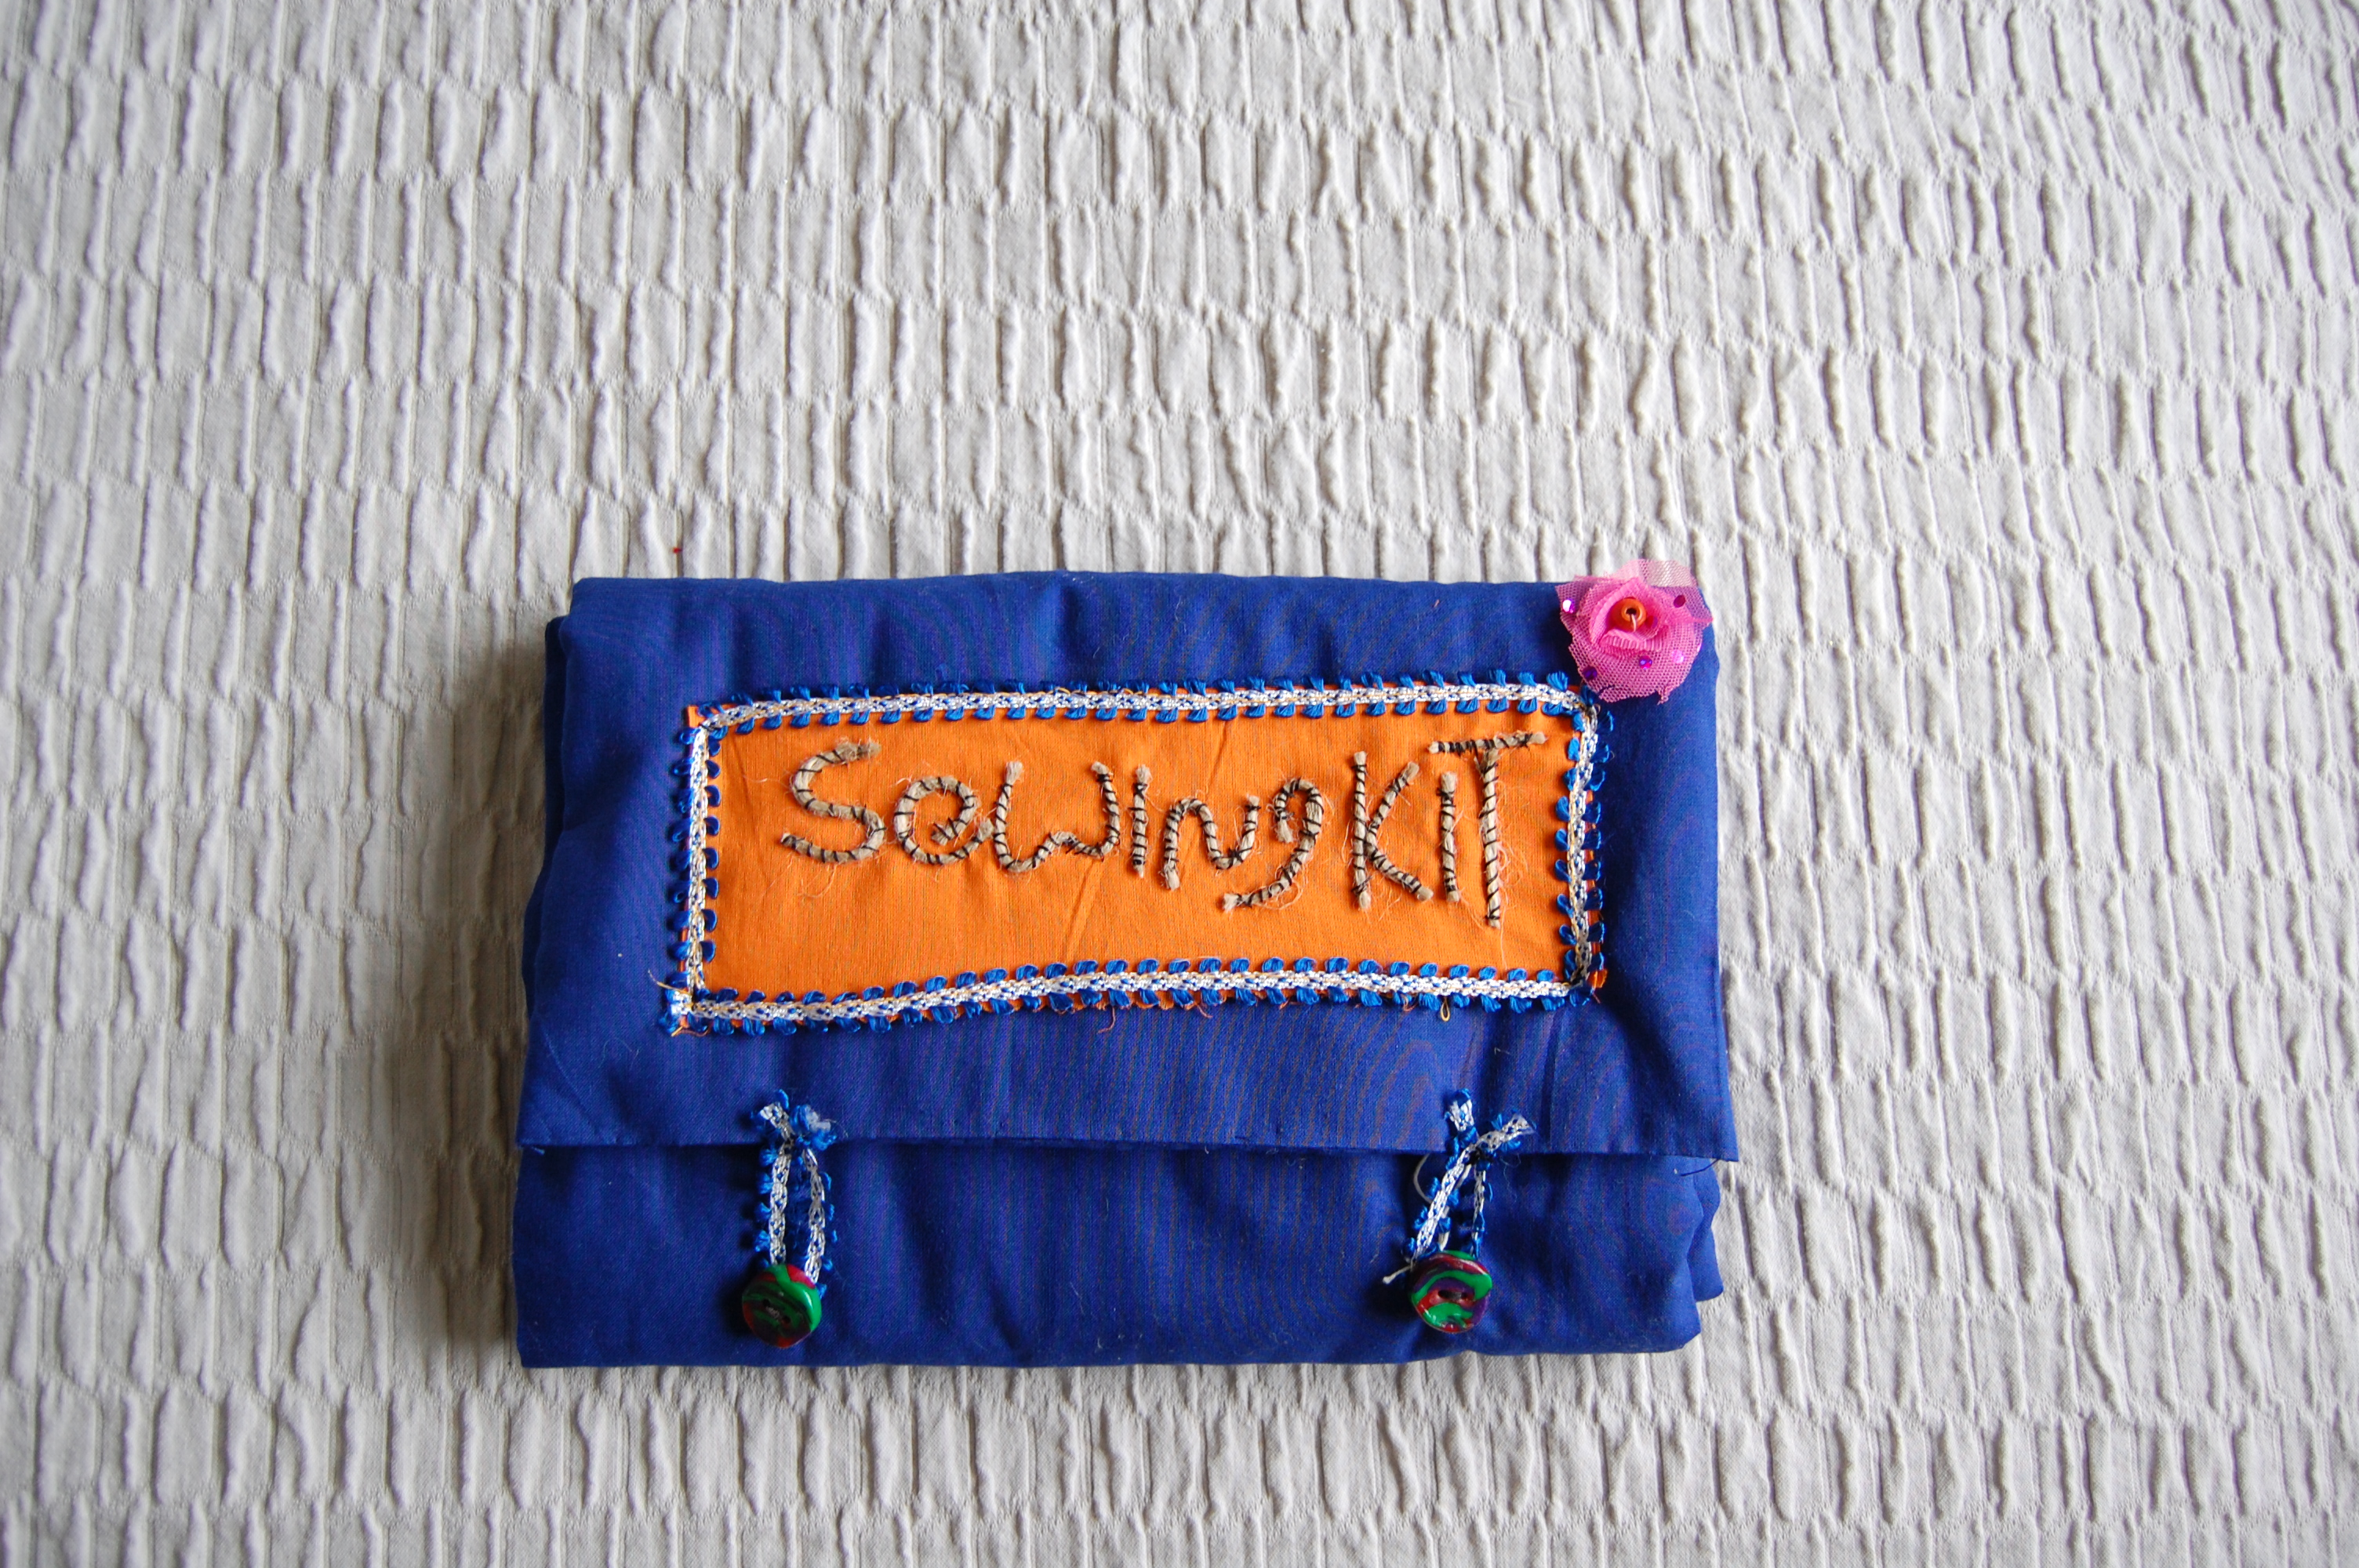 sewing kit created